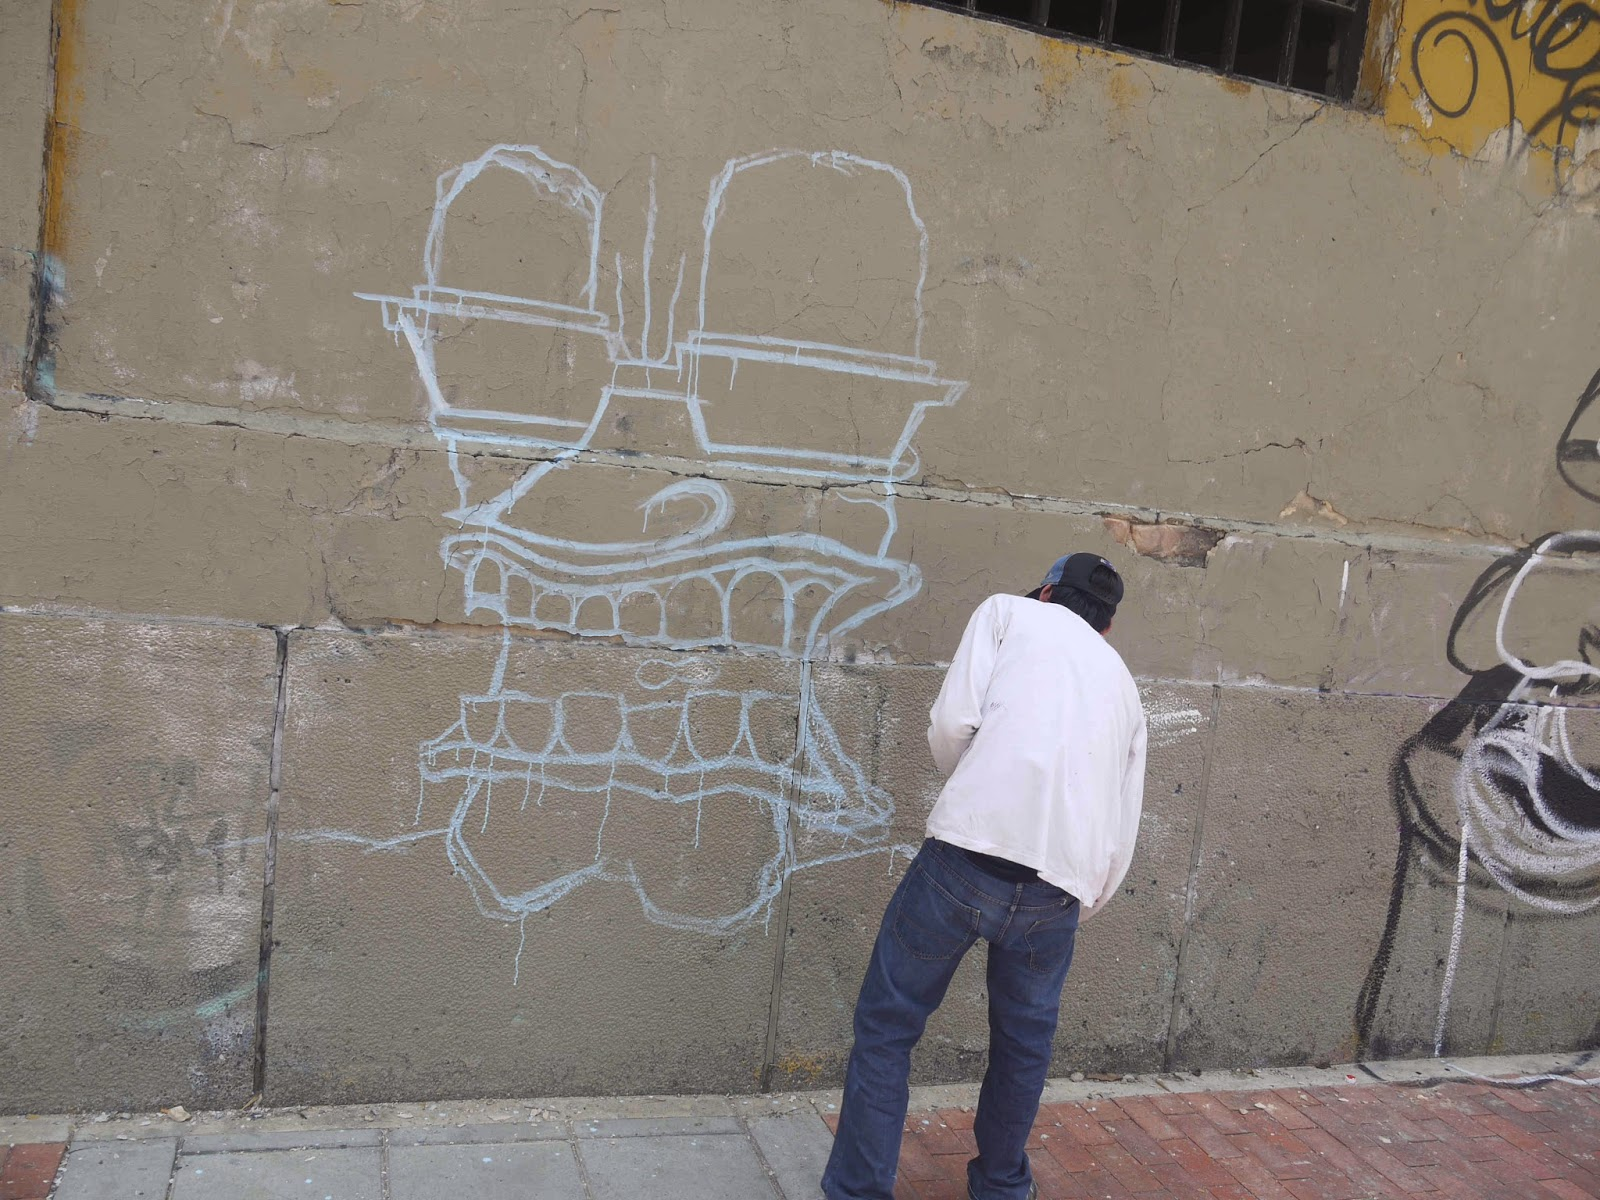 A graffiti artist sits on calle 26 above graffiti calling bogotás temporary designated mayor rafael pardo illegitimate